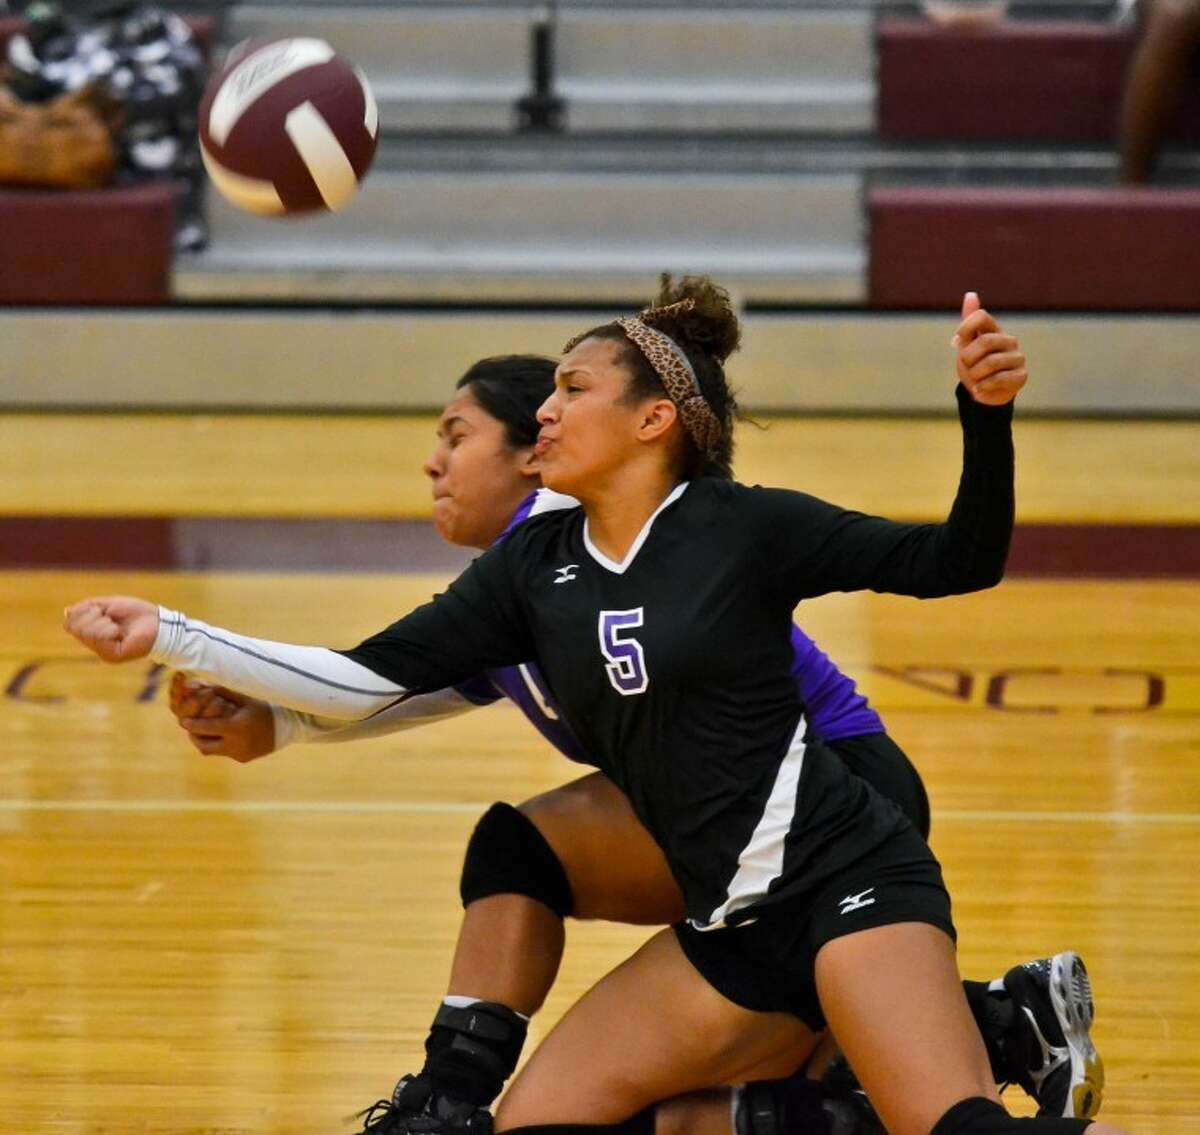 Jasmine Bledsoe (5) and Jackie Enriquez both dive to return a serve in the third game of Humble's 3-0 loss at Summer Creek Sept. 11.